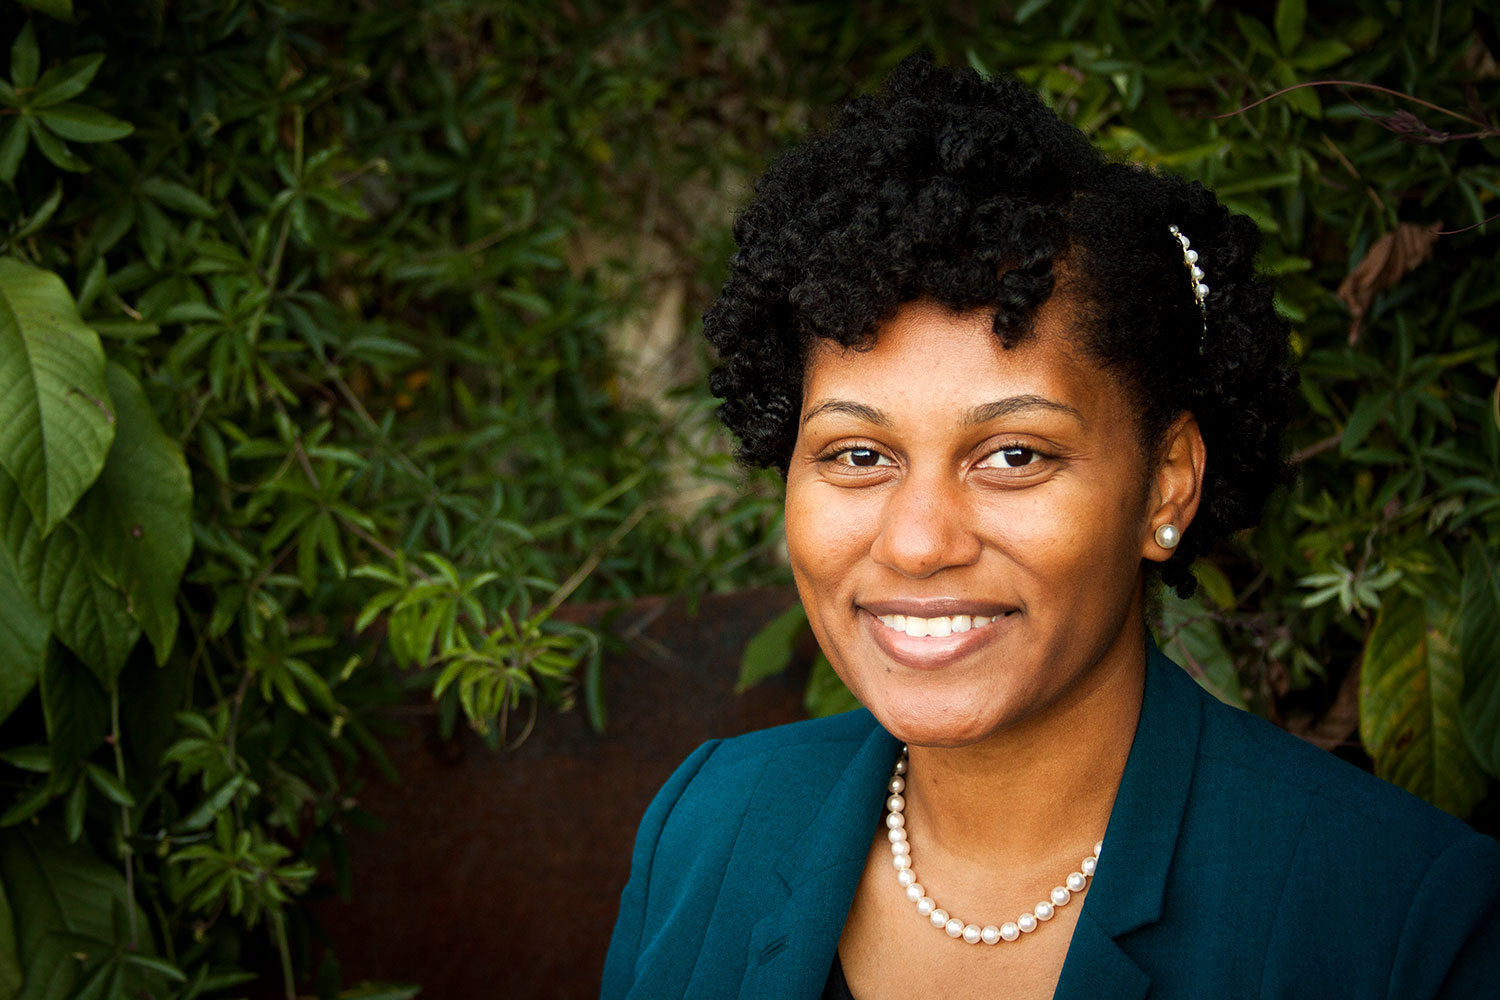 Tamara Wilkerson is a 2012 graduate of the Curry School and executive director of the African American Teaching Fellows program.